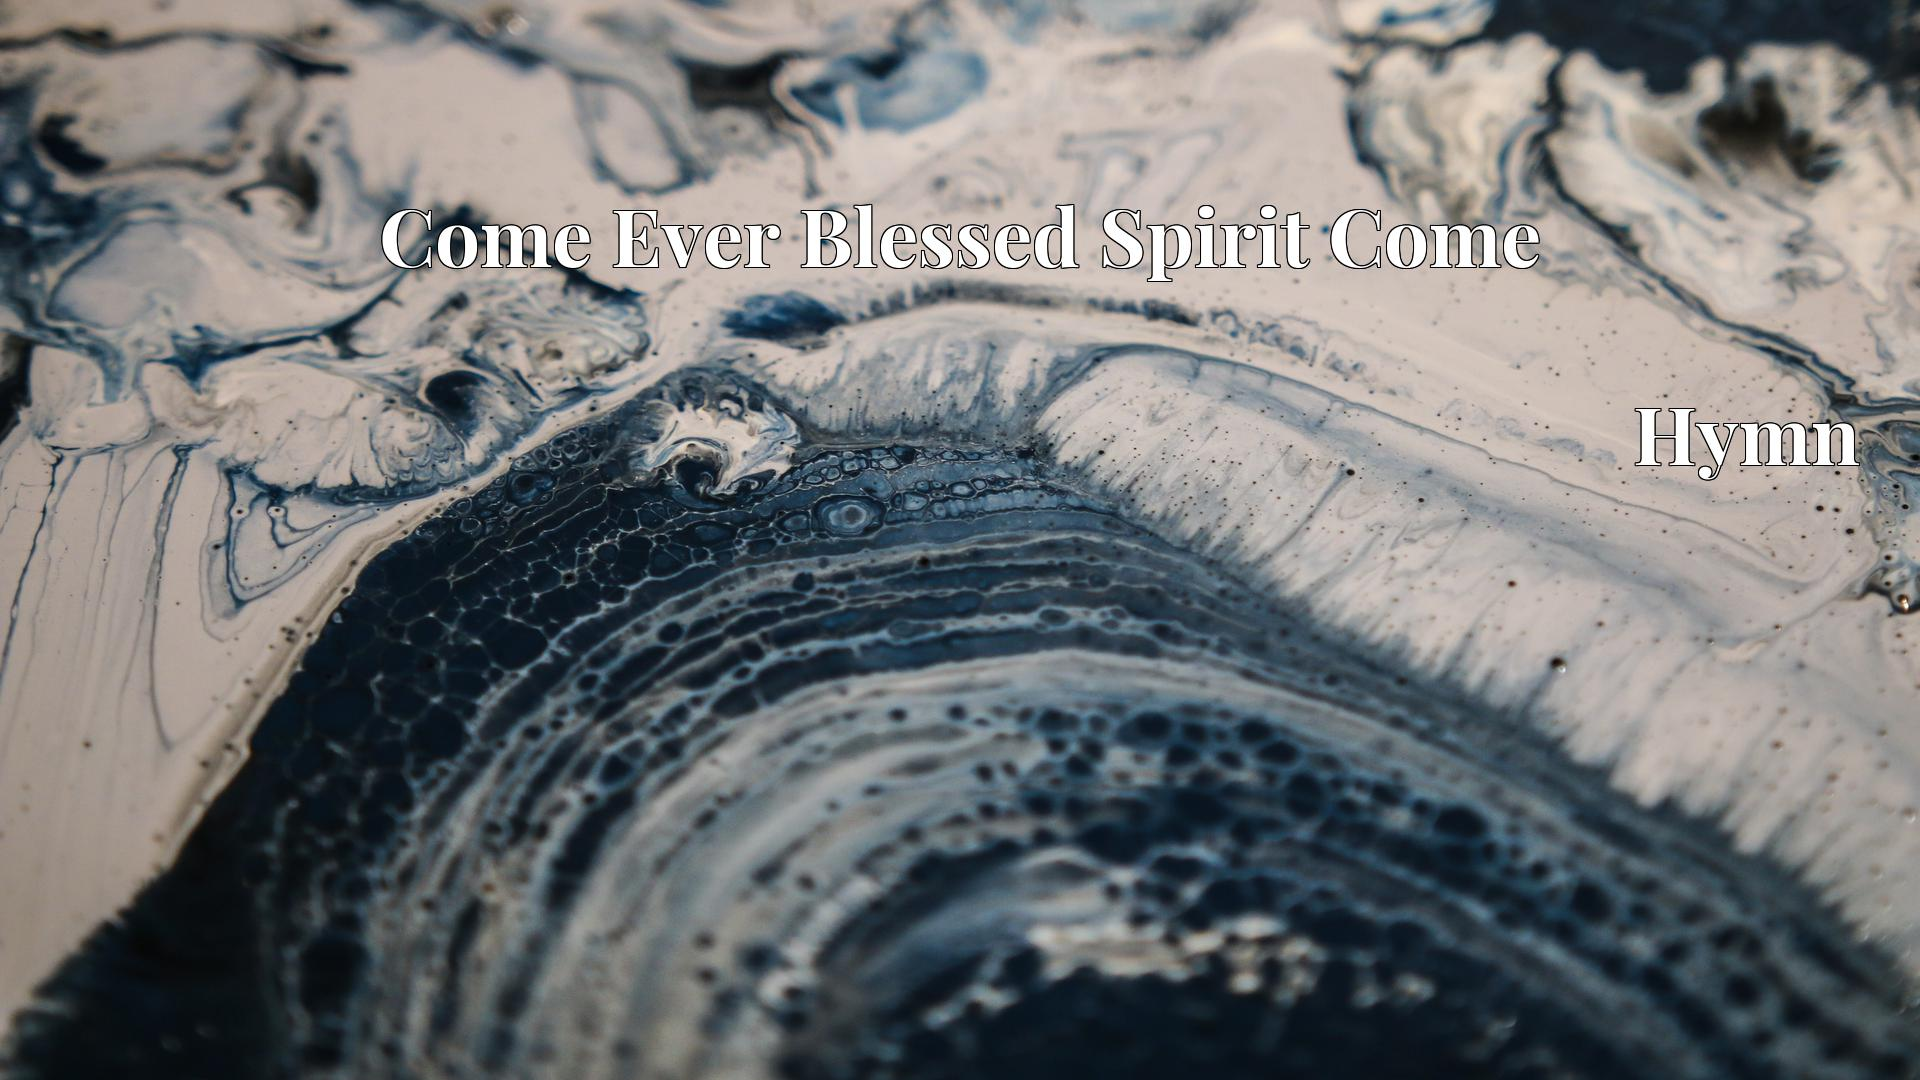 Come Ever Blessed Spirit Come - Hymn